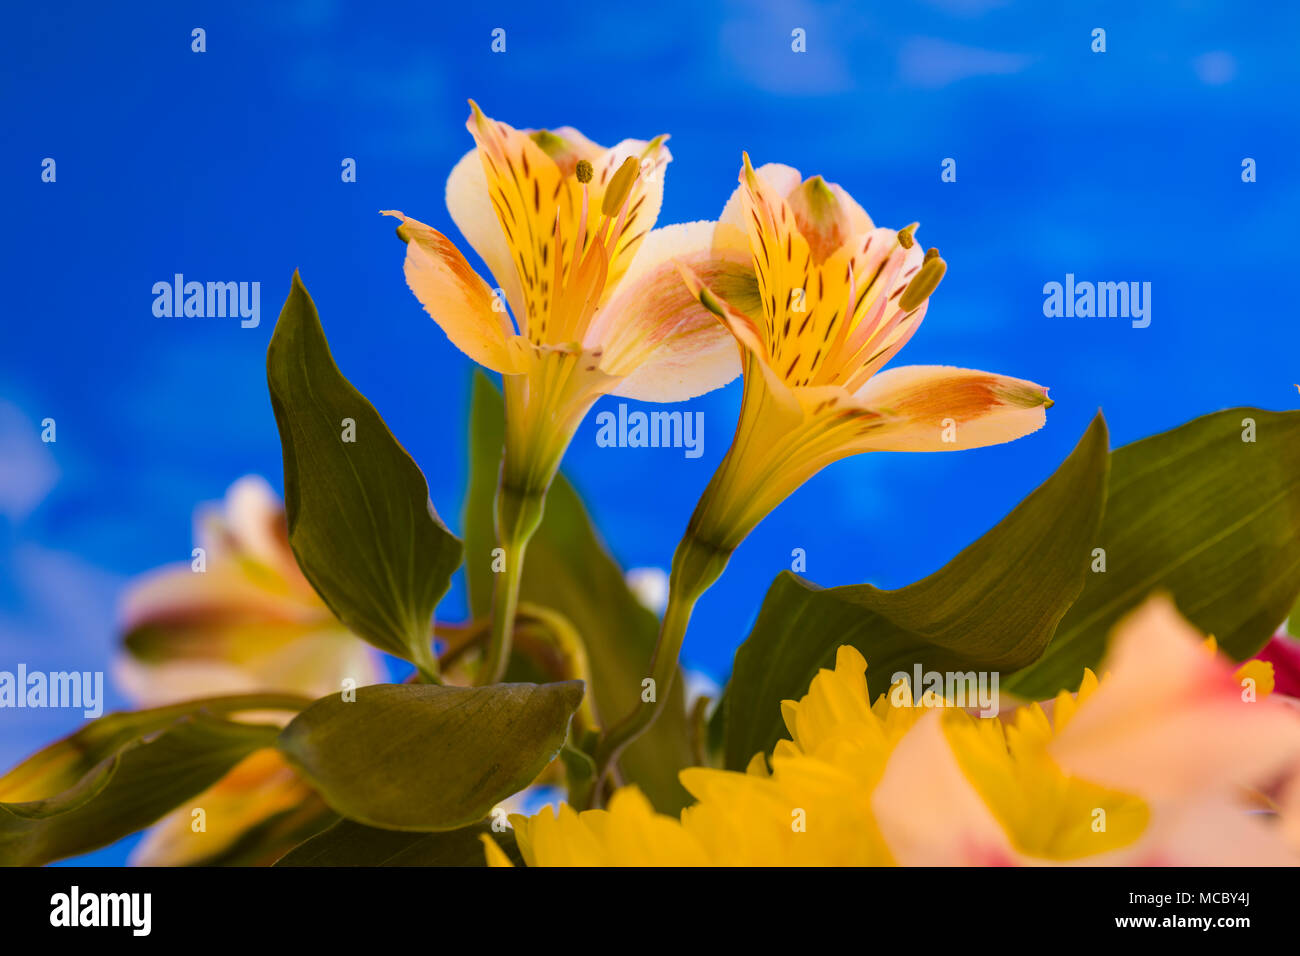 Closeup of yellow Alstroemerias flowers commonly know as Peruvian Lilies or Lily of the Incas against a blue background Stock Photo